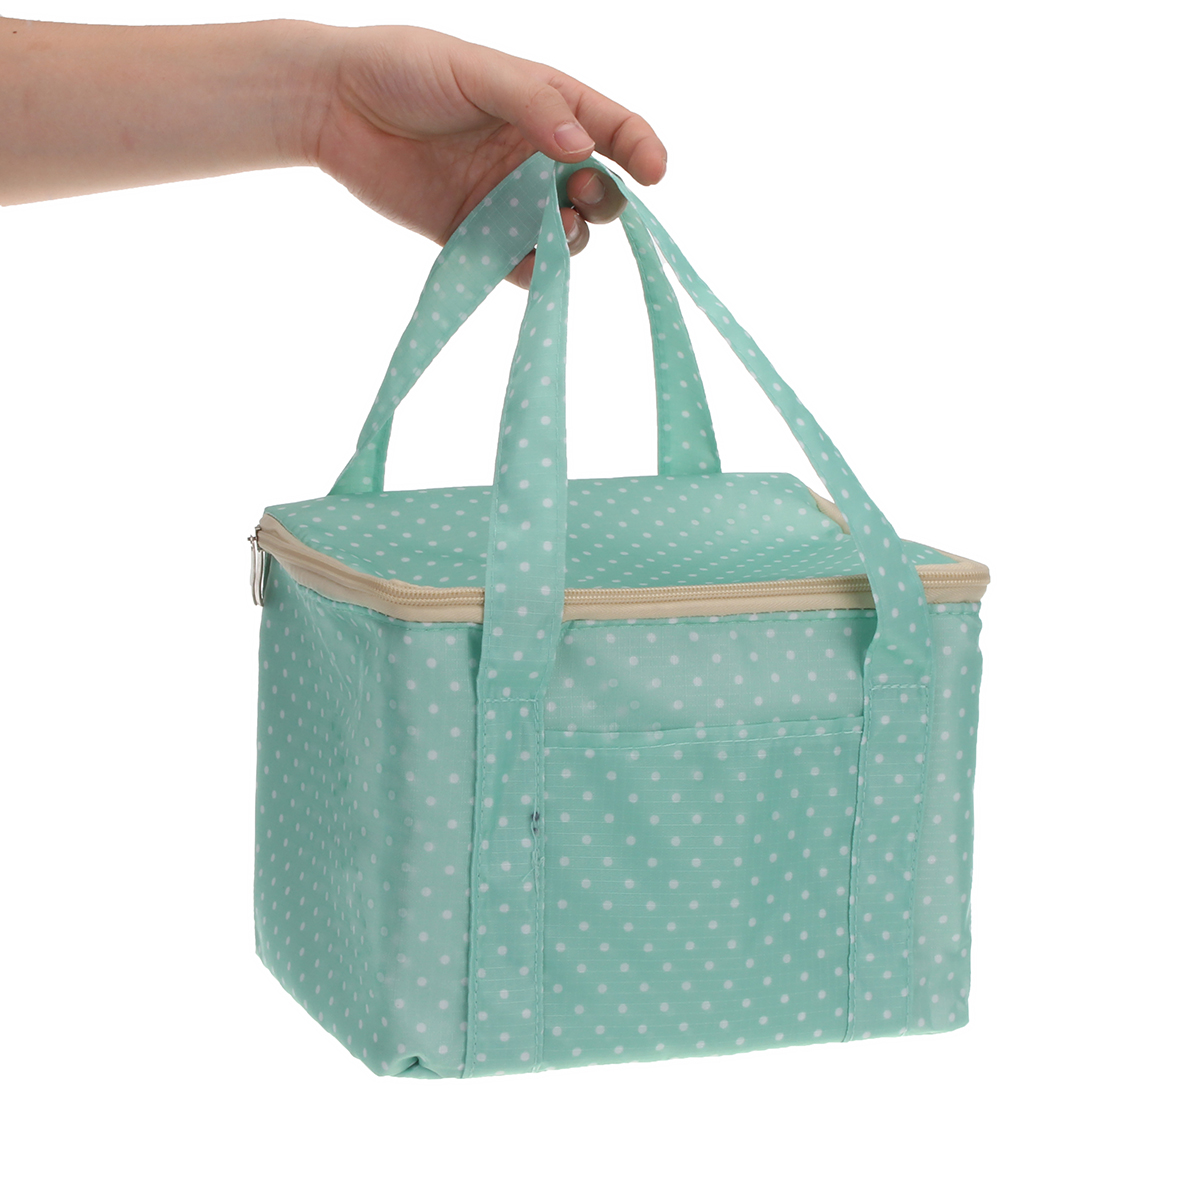 Portable Oxford Cloth Insulated Lunch Bag Square Thermal Bag Tote Outdoor Picnic Container